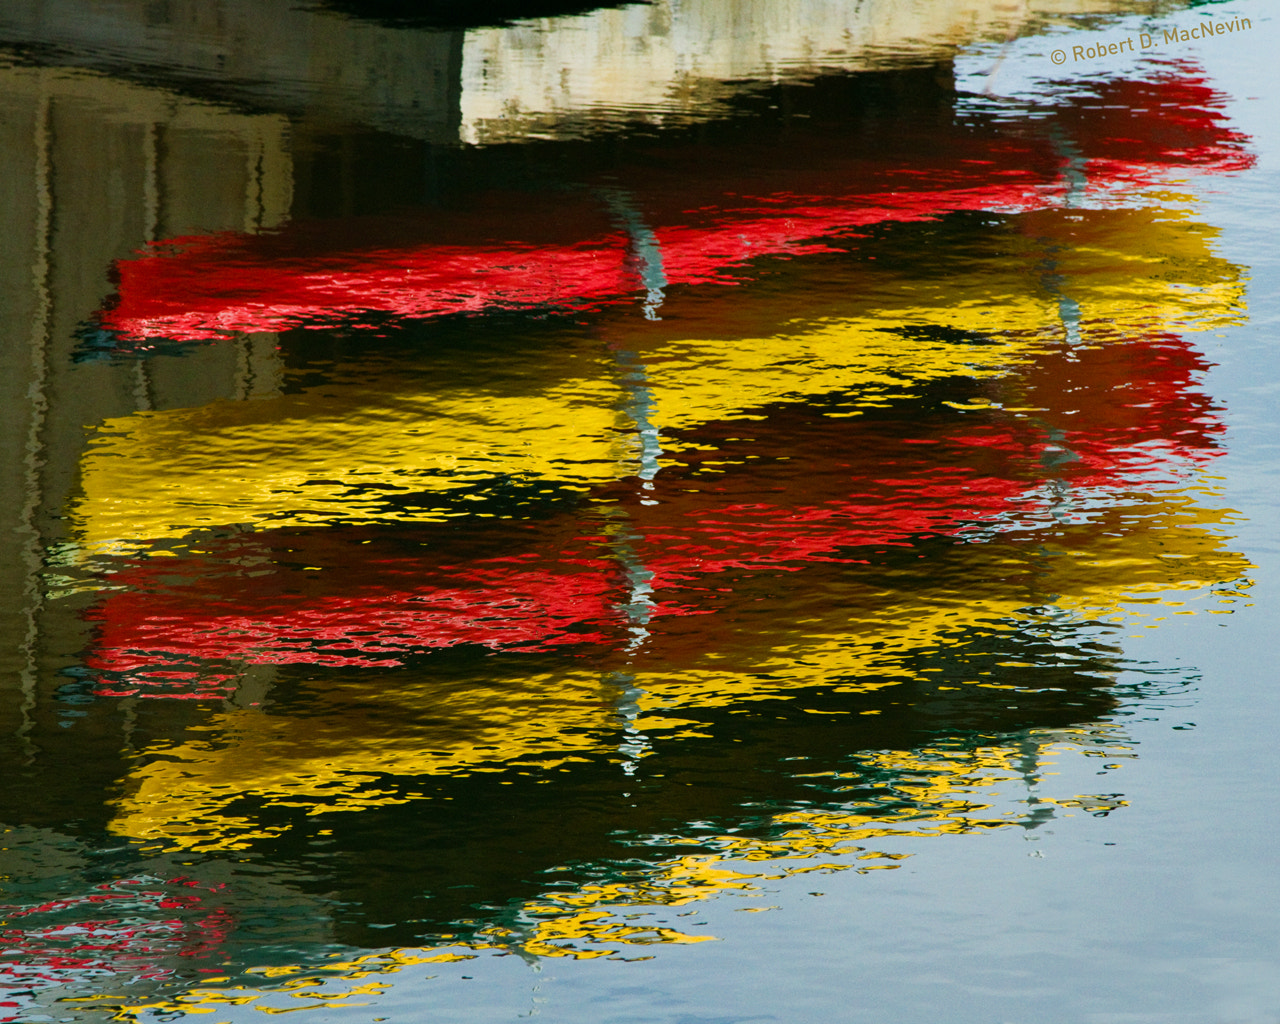 Photograph Rippled by Robert D. MacNevin on 500px